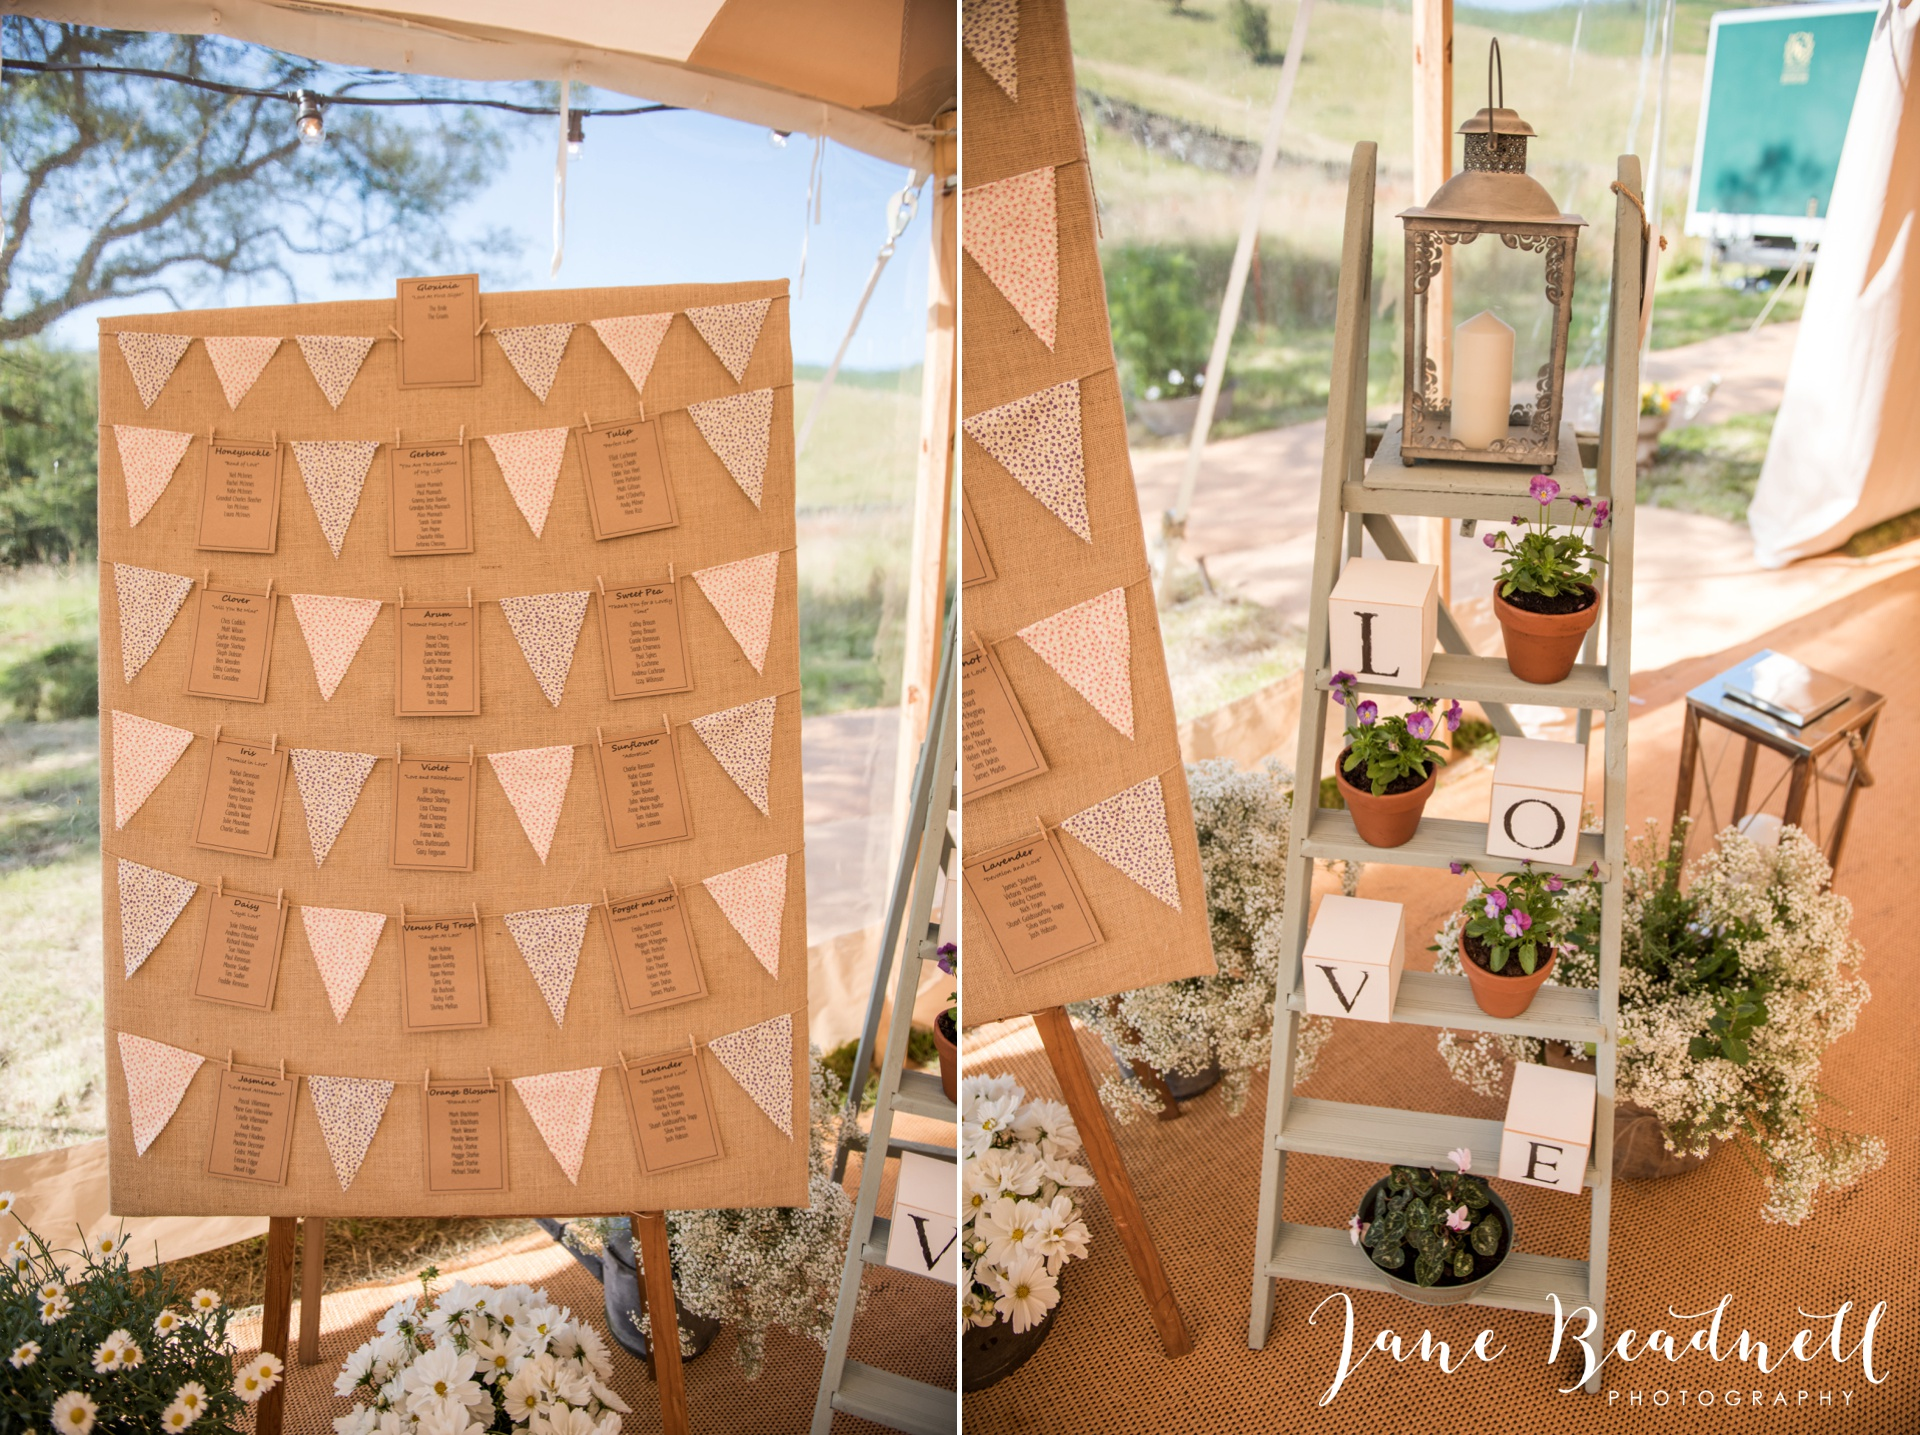 Jane Beadnell fine art wedding photographer Sperry Tent wedding Ilkley_0003